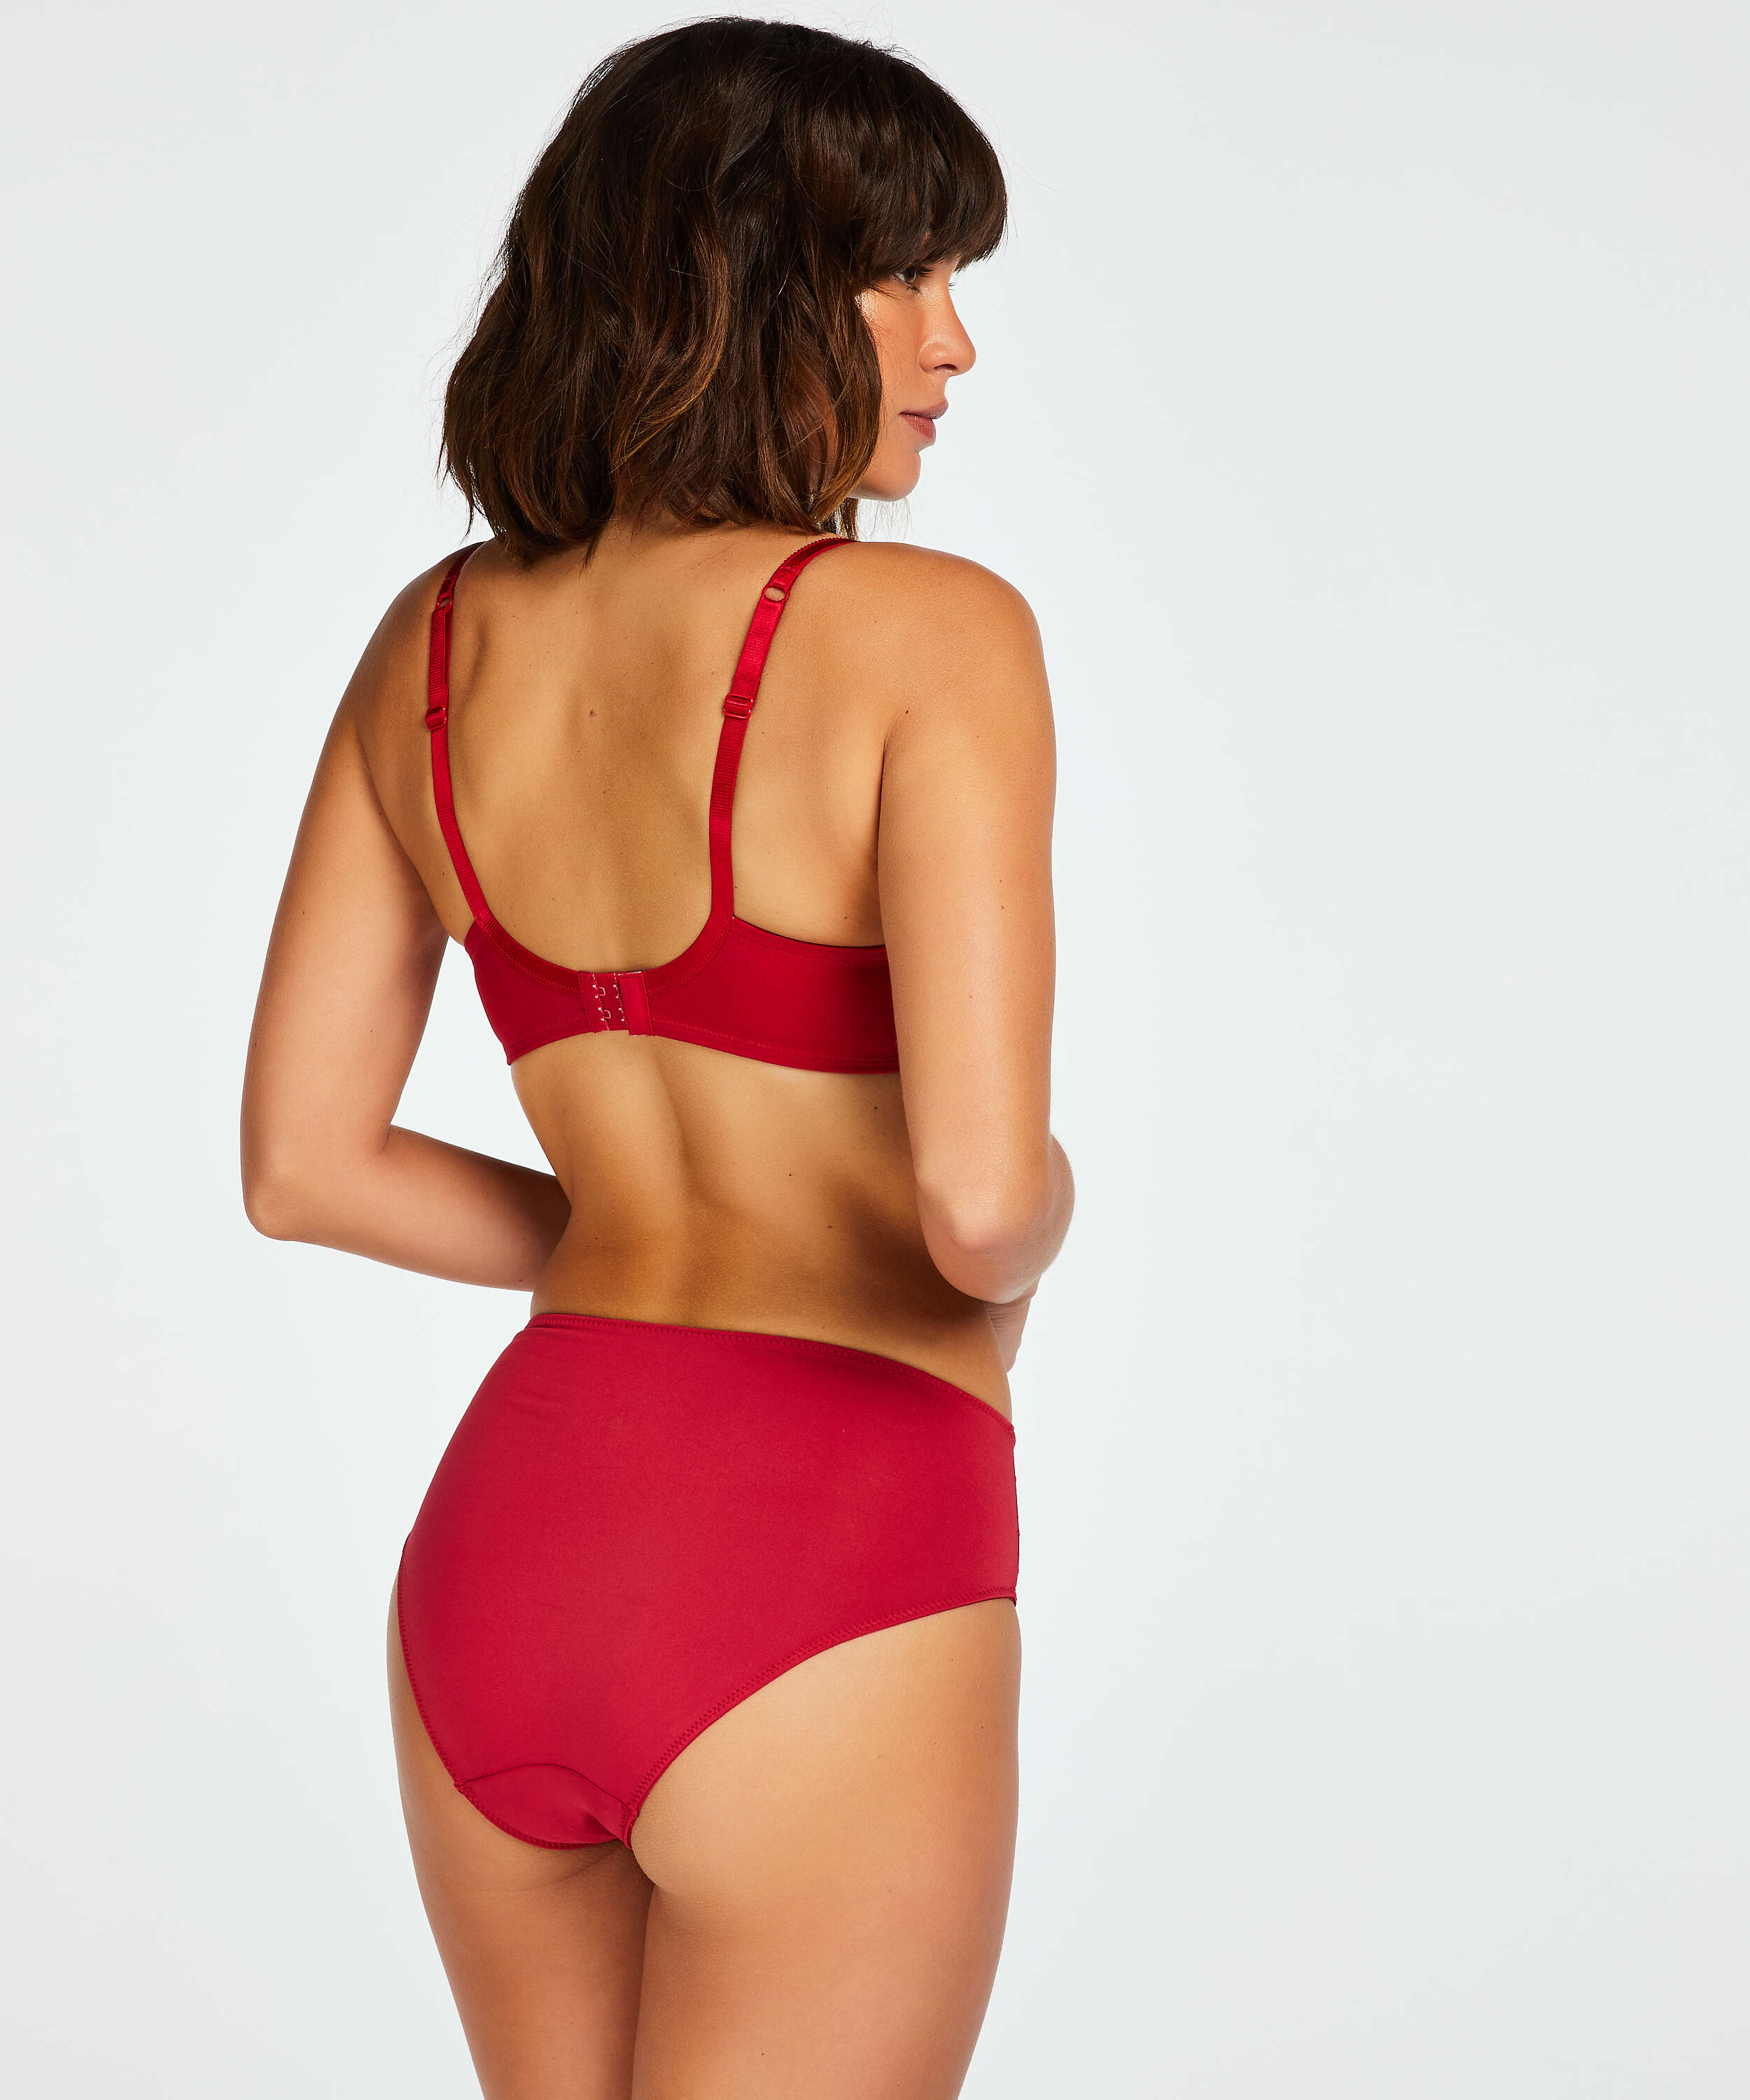 Sophie Non-Padded Underwired Bra, Red, main